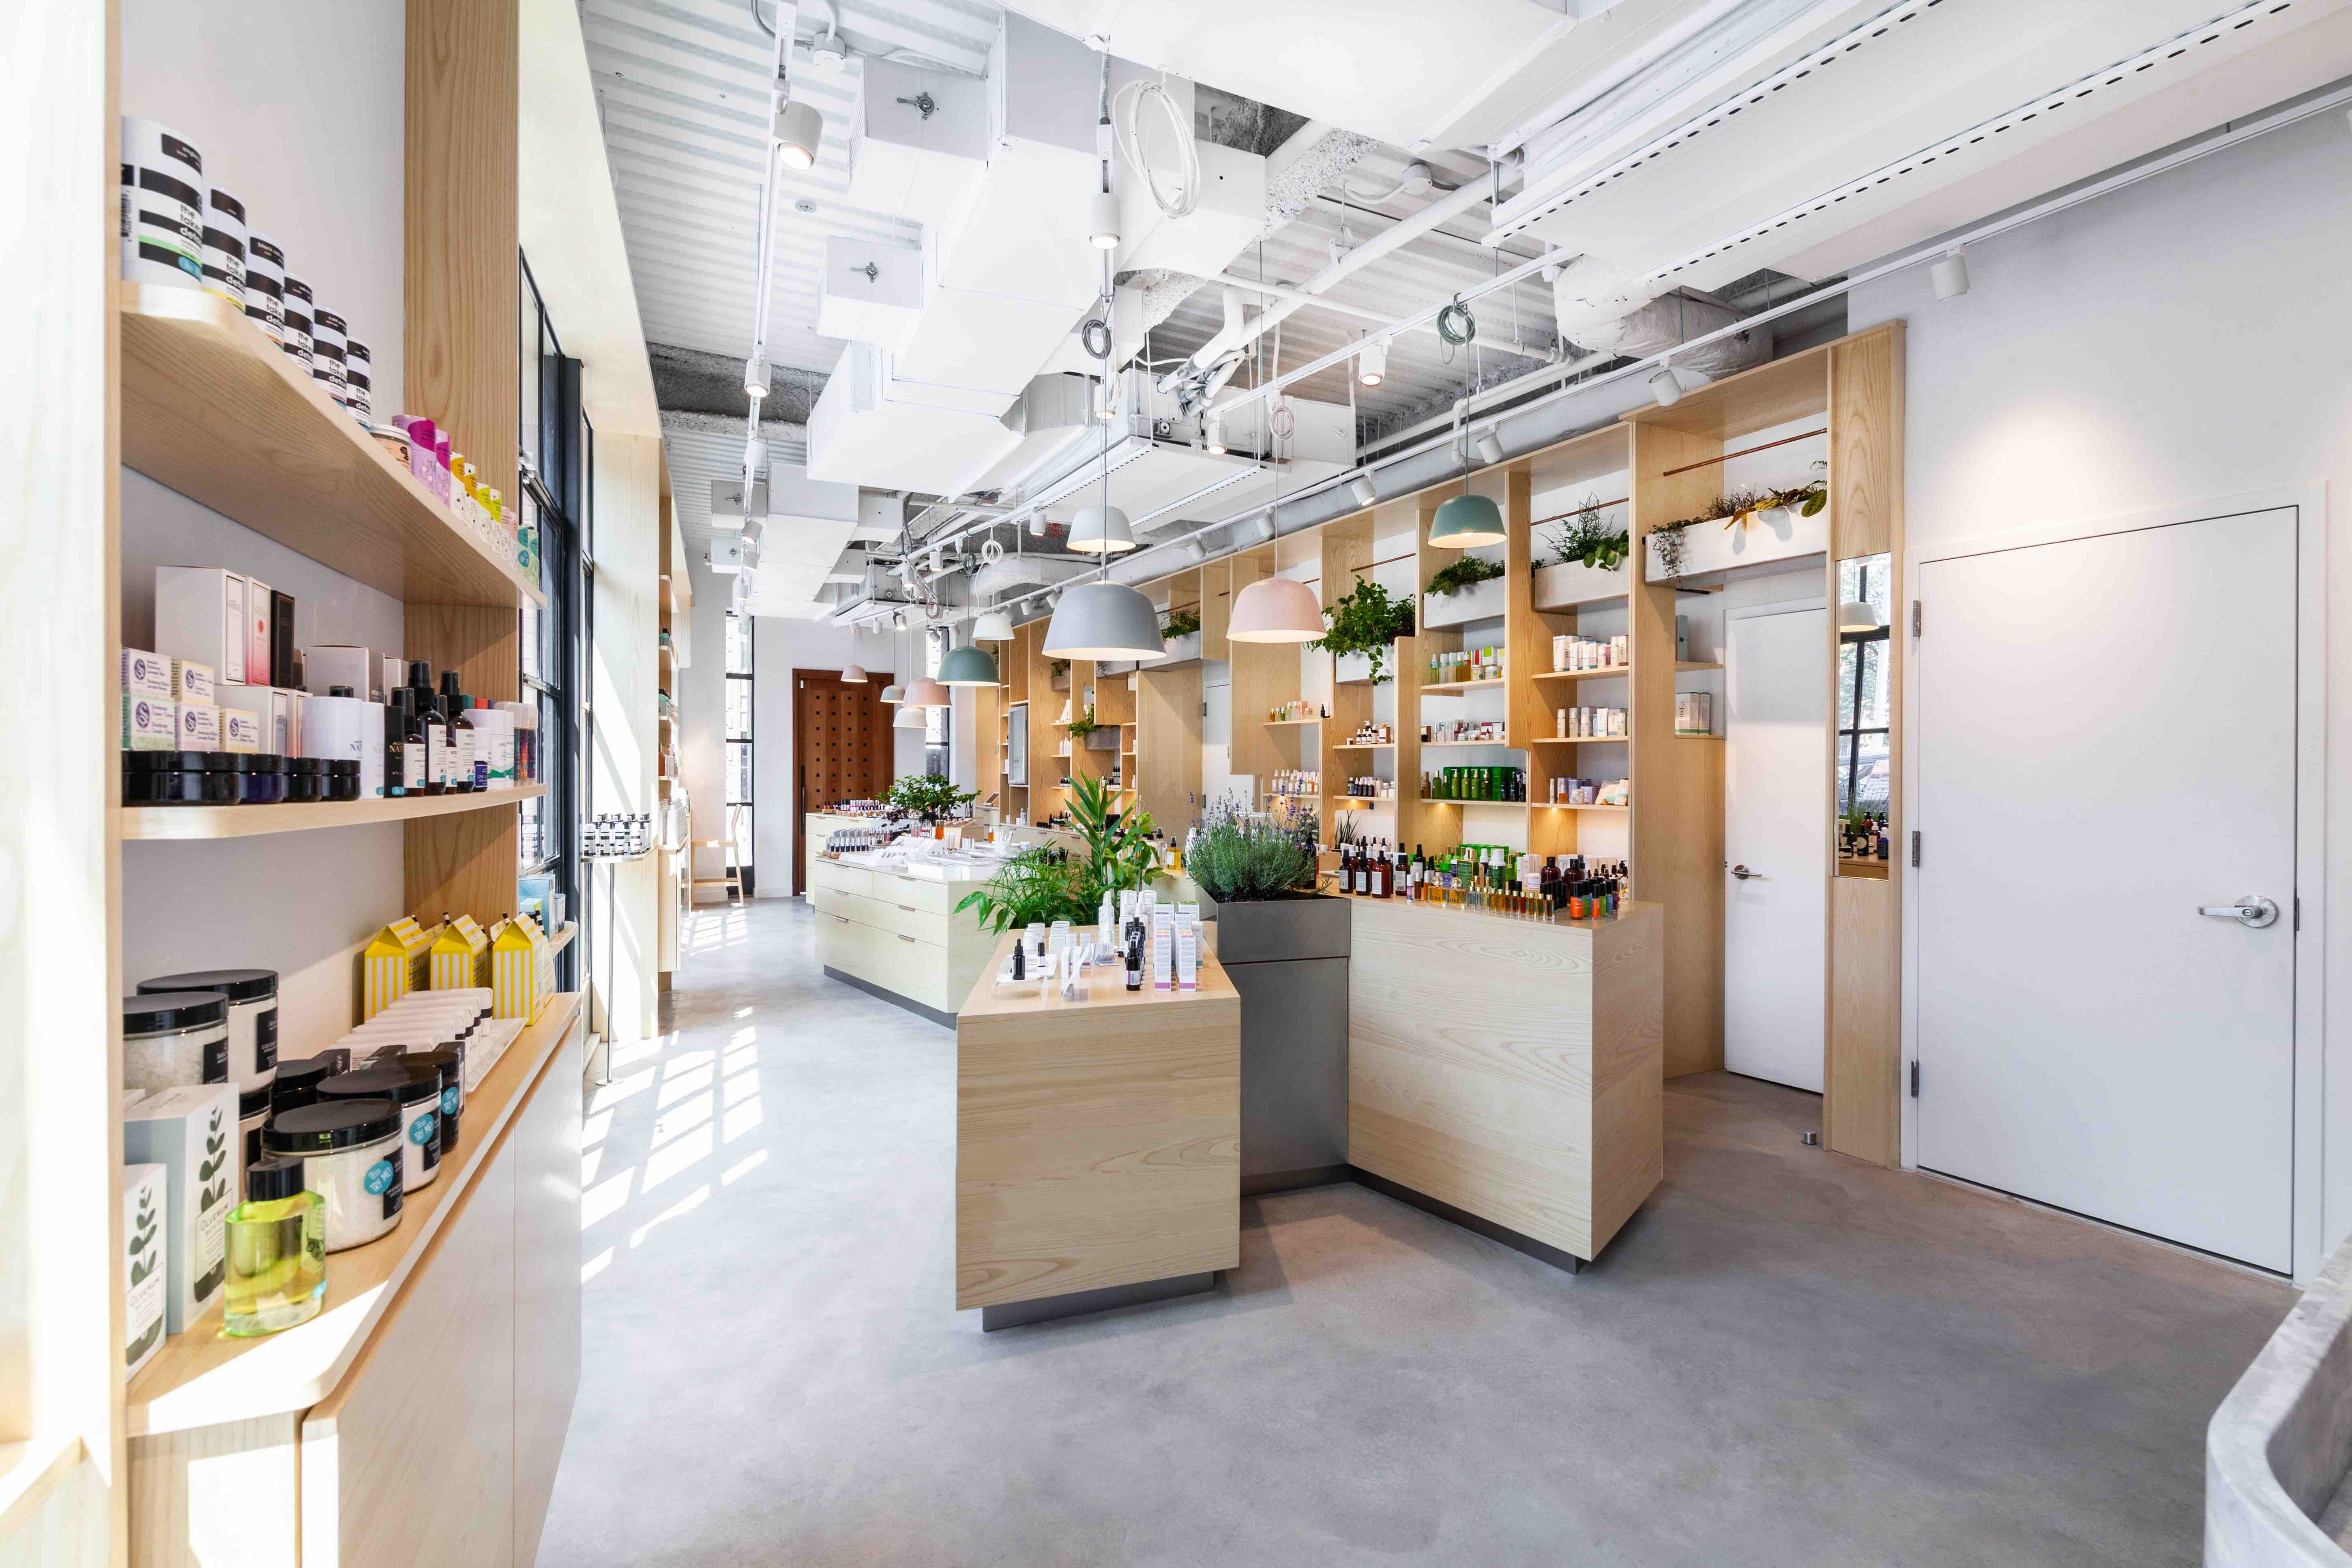 The Detox Market will host an invite-only party at its three-floor New York City location during the Week Of Independent Beauty.